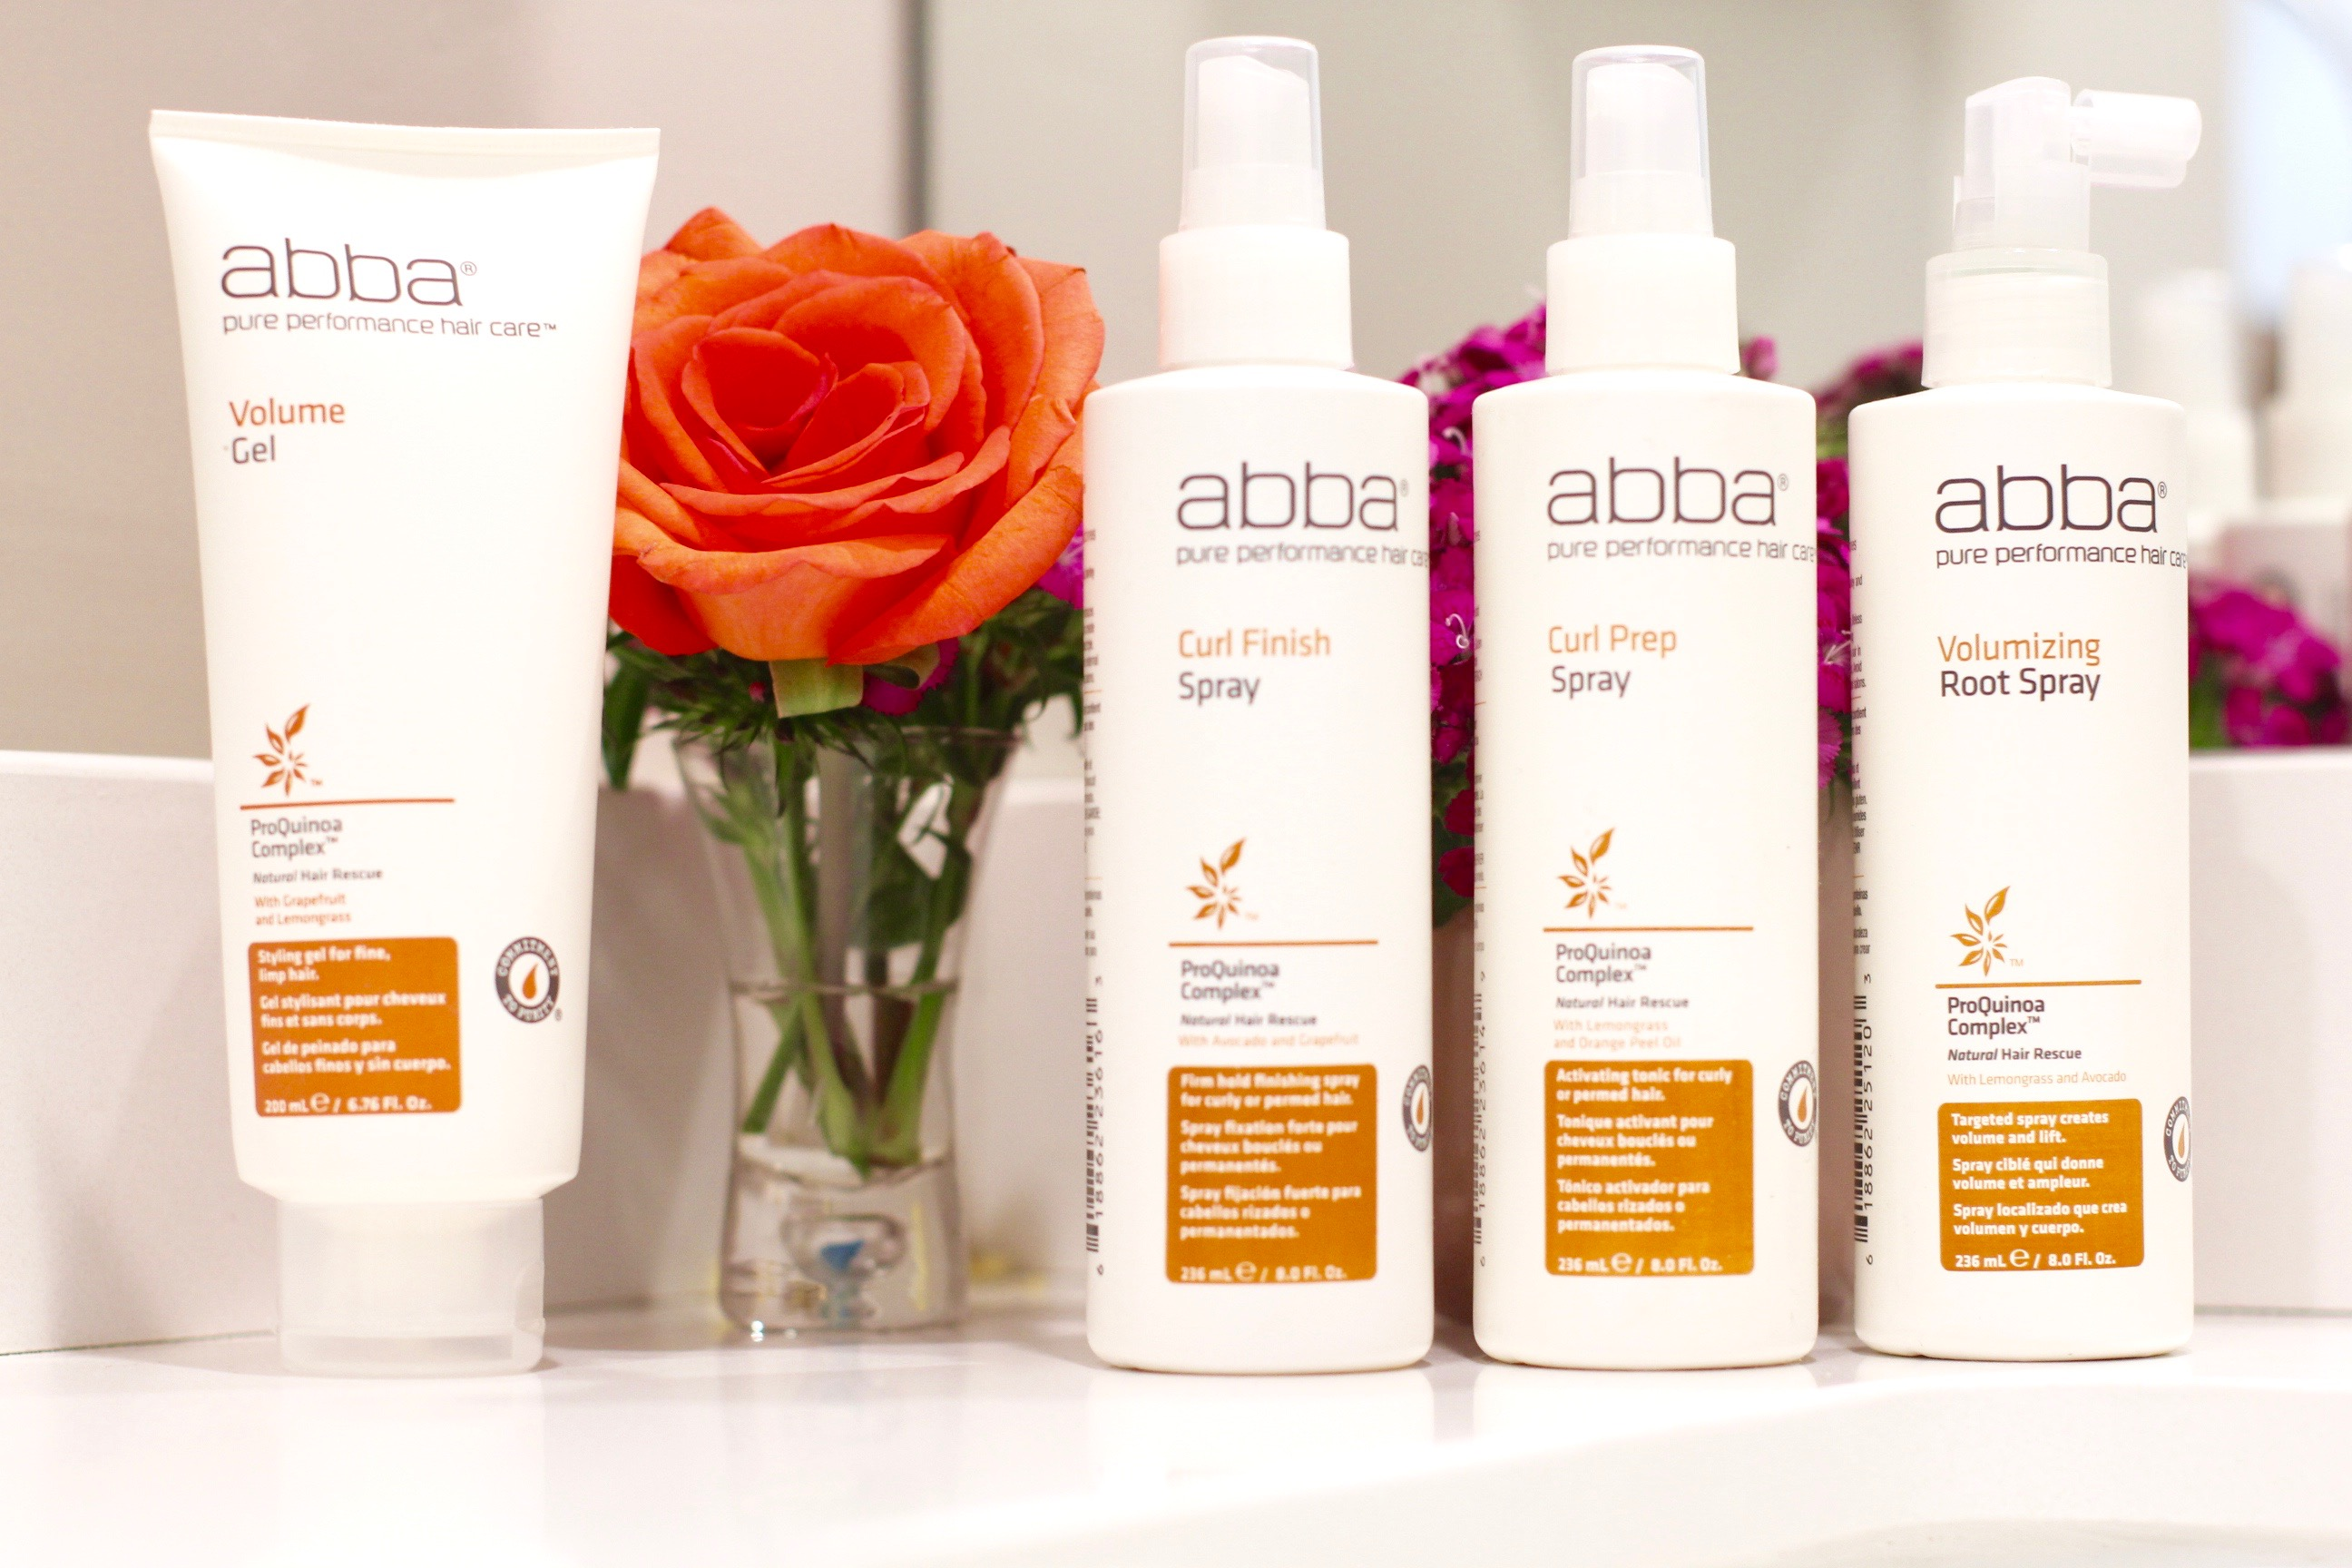 abba haircare, missyonmadison, ulta, ulta beauty, ulta haircare products, hair care for curly hair, how to curl your hair, how to prep your hair for summer, natural hair, abba hair, natural haircare, volumizing root spray, beauty blogger, hair care tips,